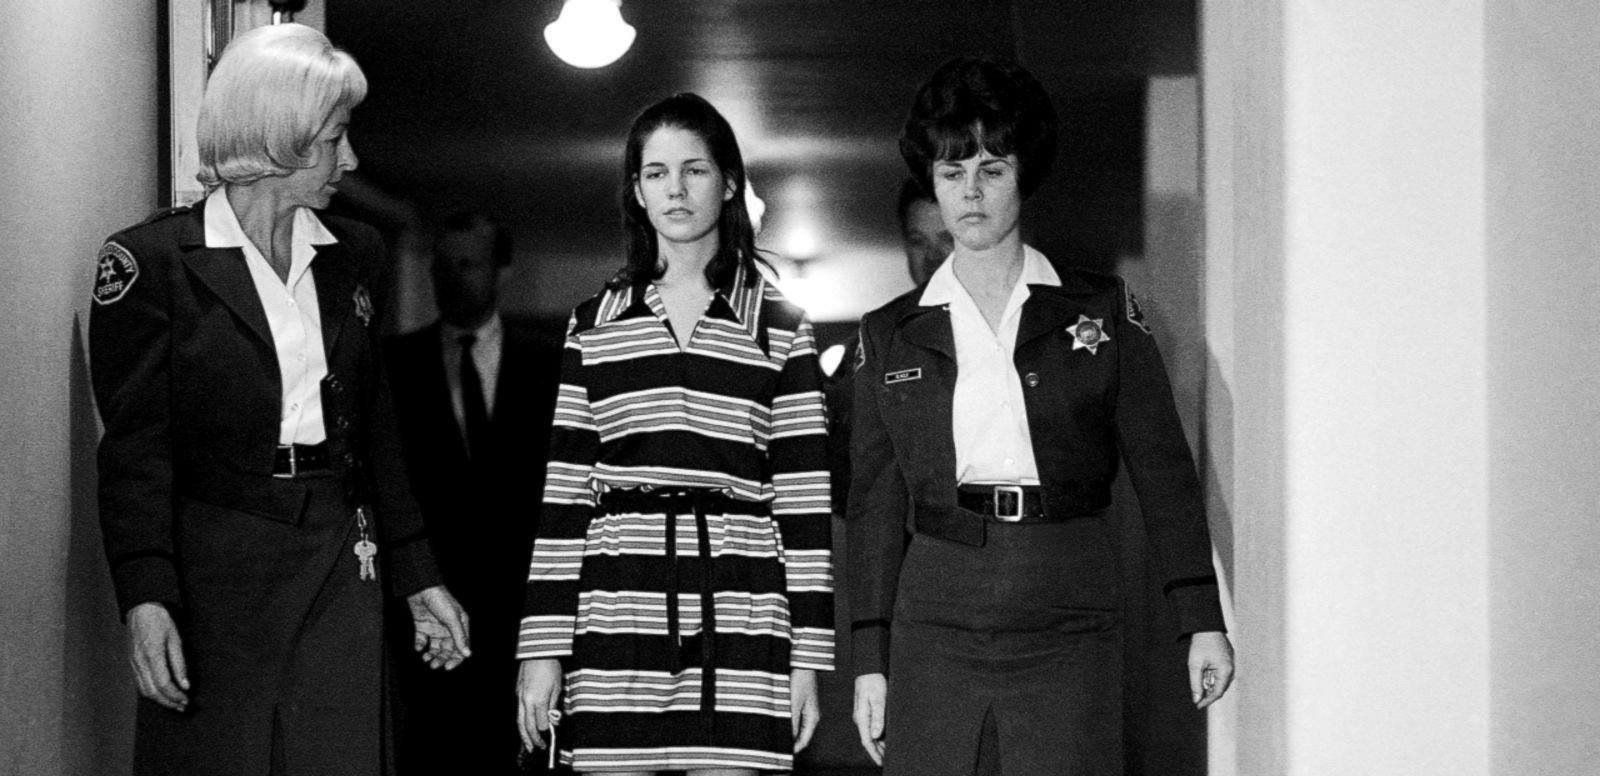 VIDEO: California Gov. Jerry Brown Overturns Manson Family Member's Parole